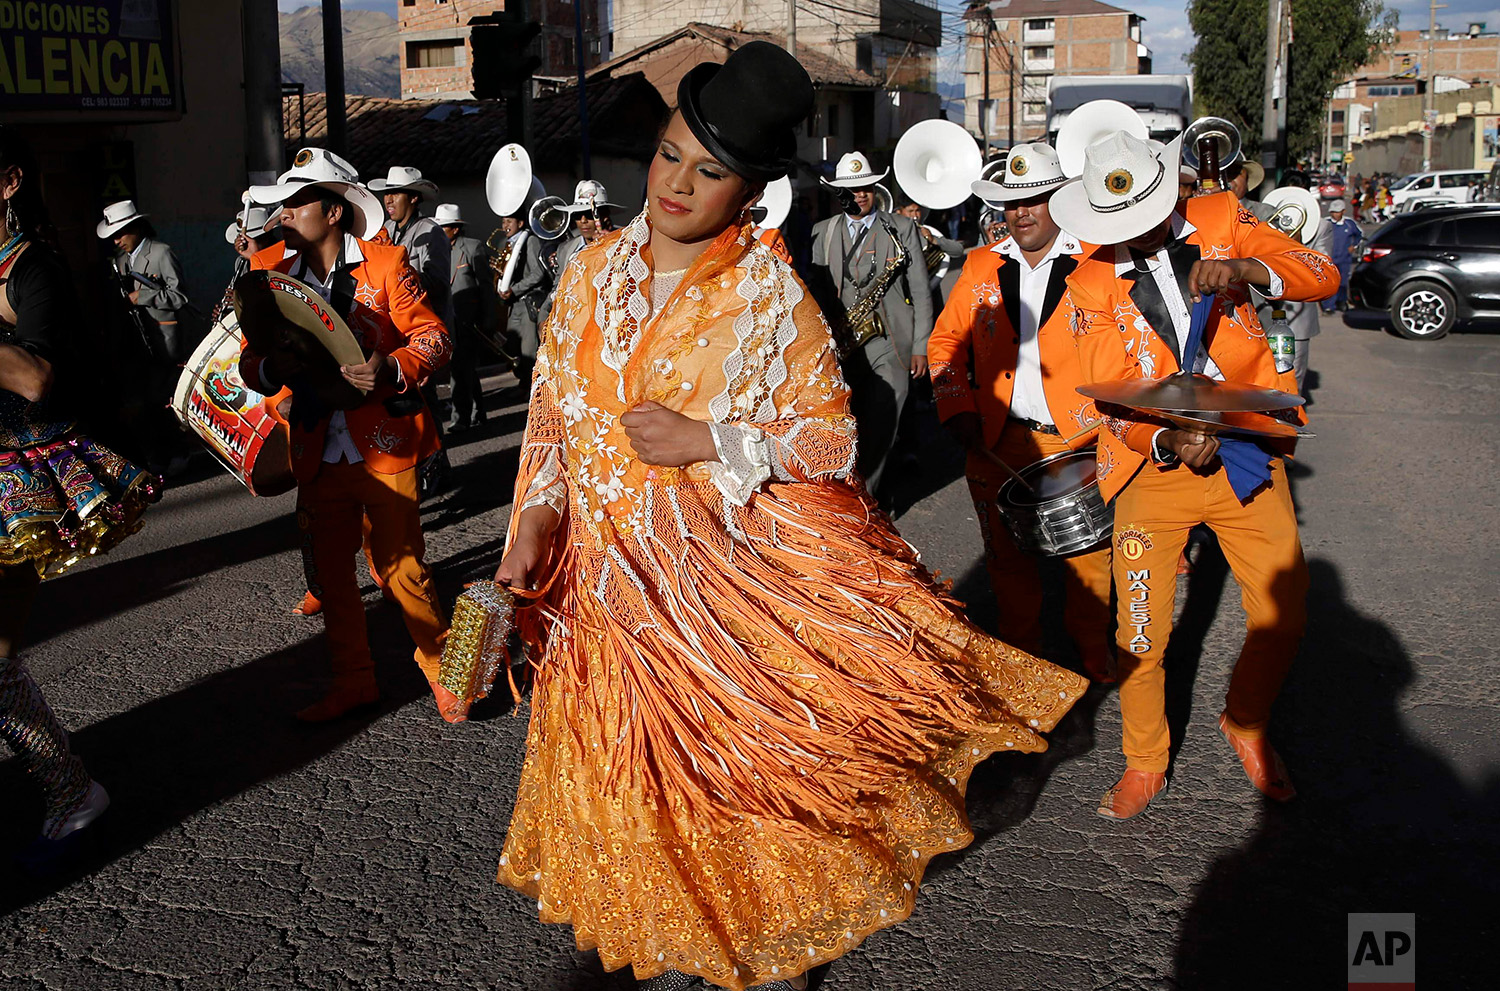 """Transgender Jessi dressed as a """"chola"""" takes part in the celebrations honoring Our Lady of Copacabana, in Cuzco, Peru, Aug. 5, 2018. Jessi and her friends dance in hope their celebratory tribute will help ward off violence and harassment in a country where being transgender can prove deadly. (AP Photo/Martin Mejia)"""